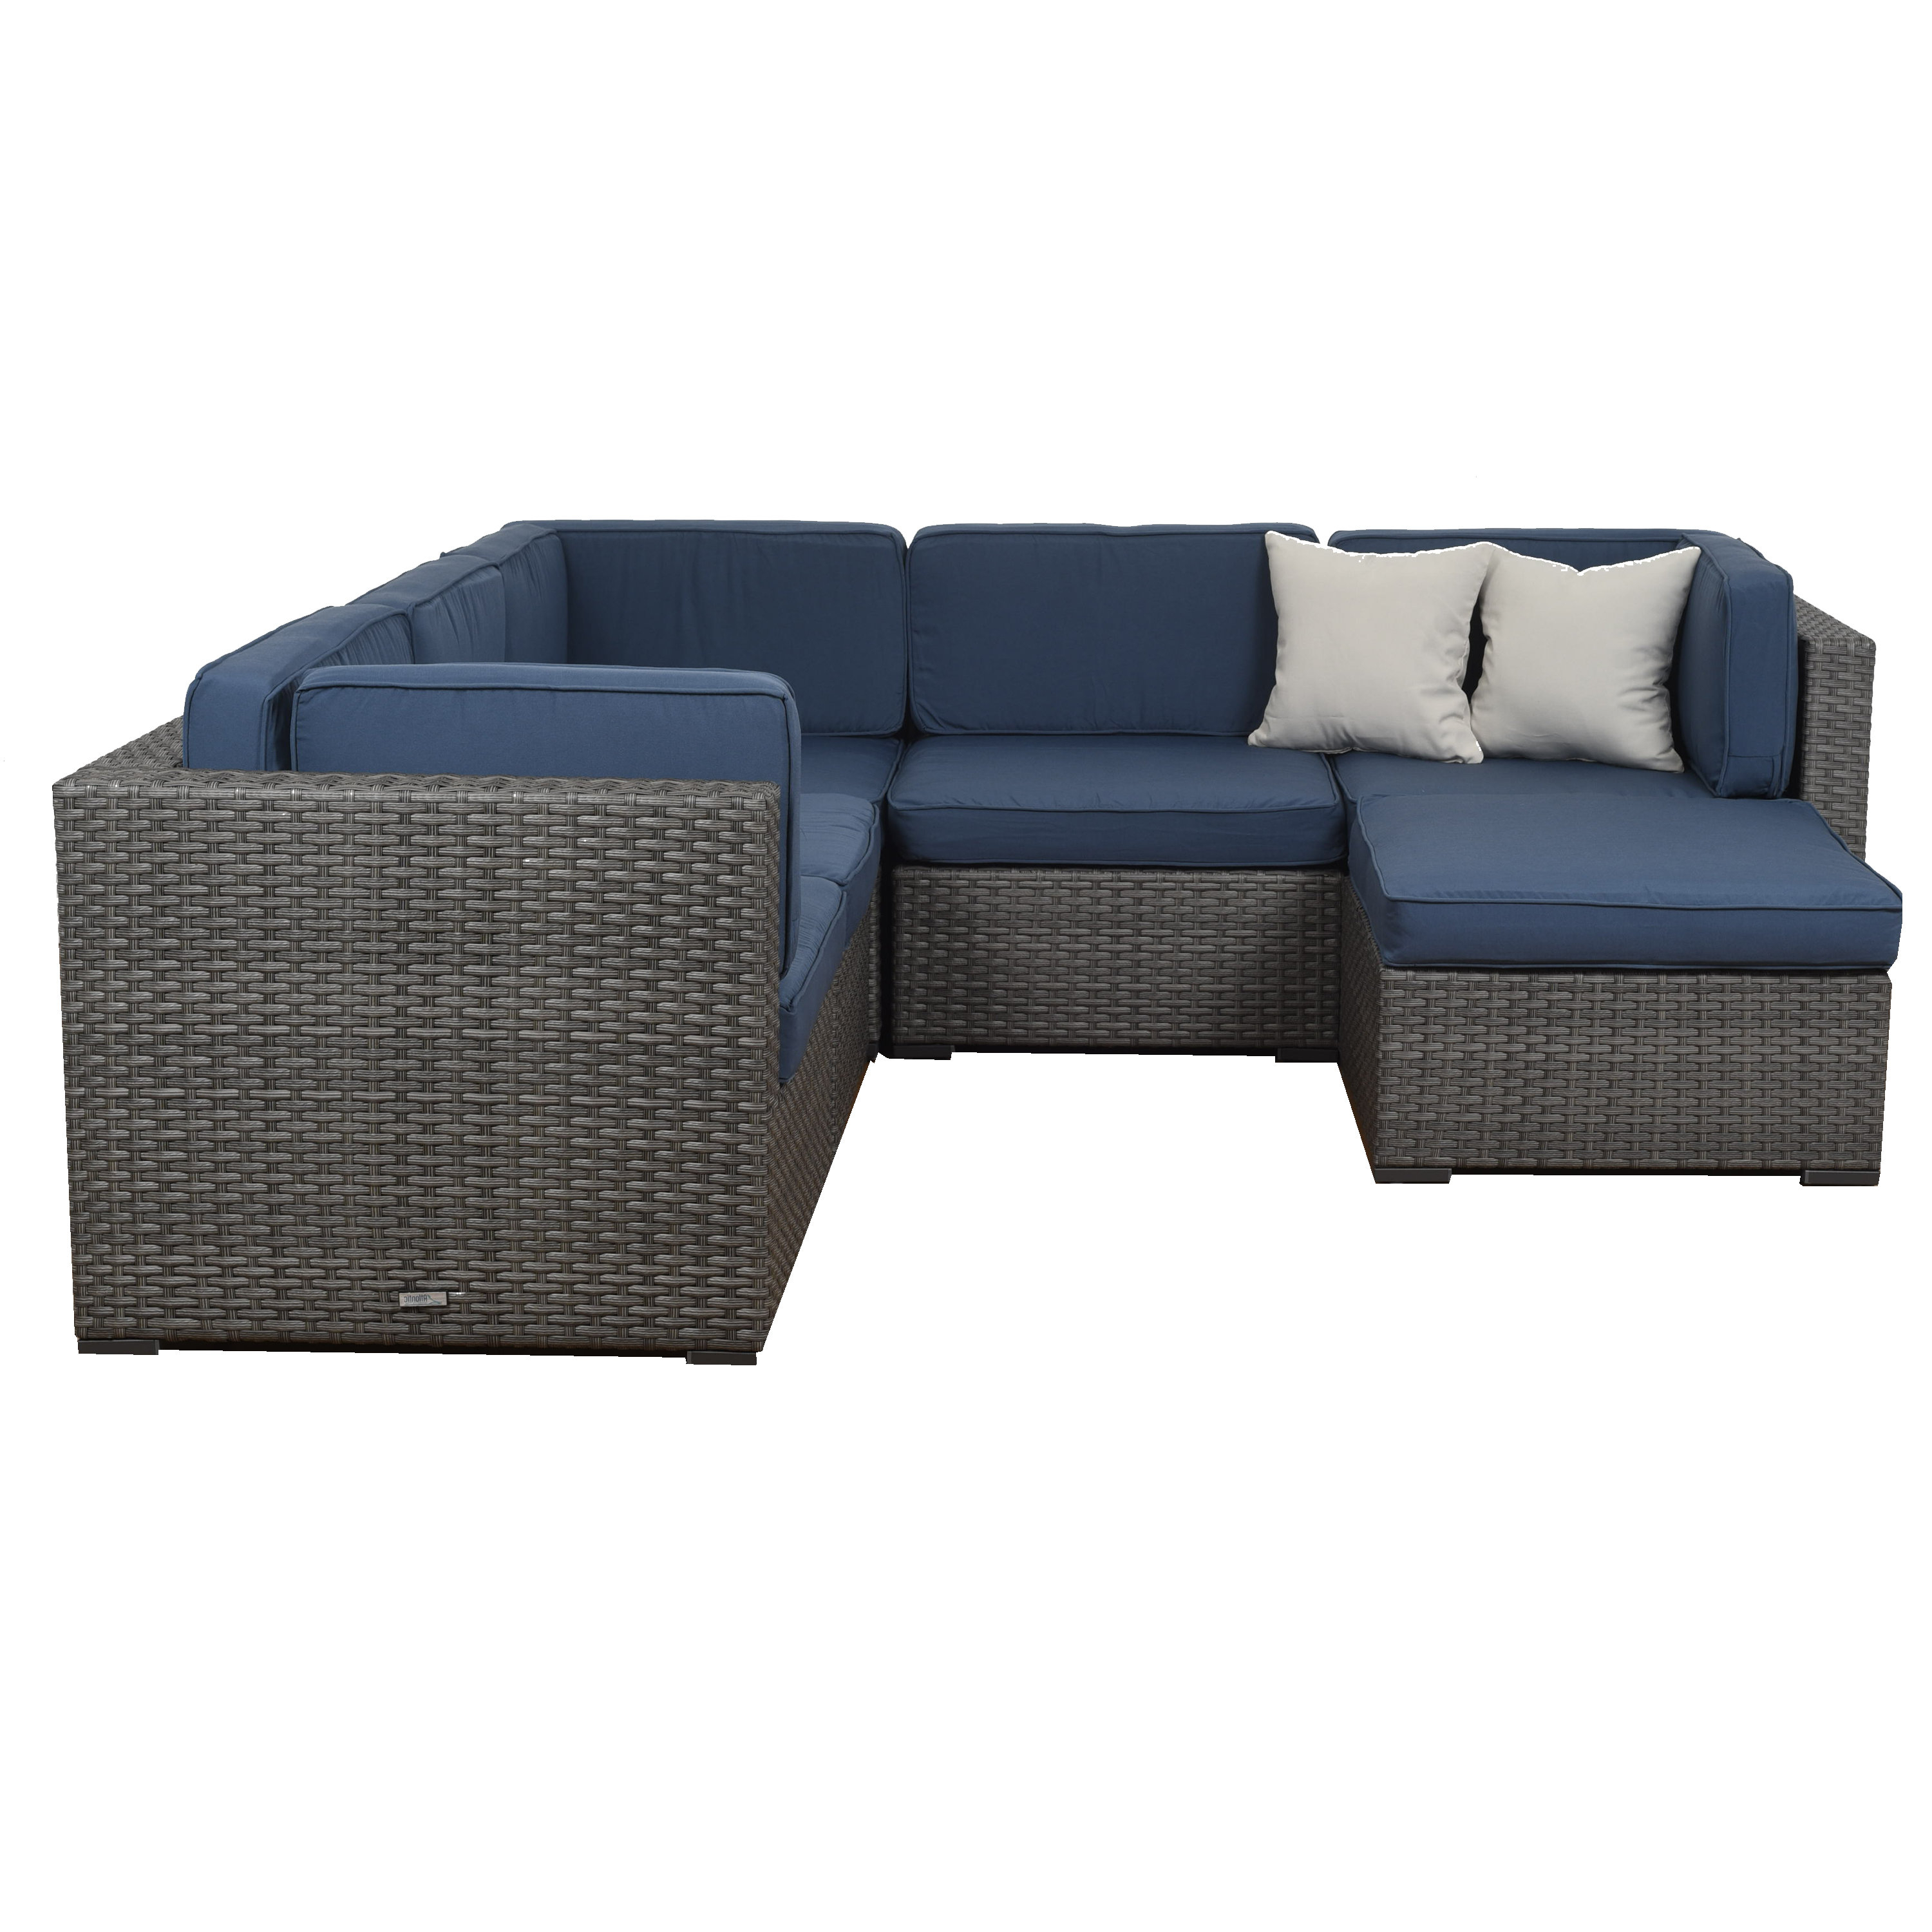 Lorentzen 6 Piece Sectional Set With Cushions Intended For Fashionable Lorentzen Patio Sectionals With Cushions (View 5 of 20)